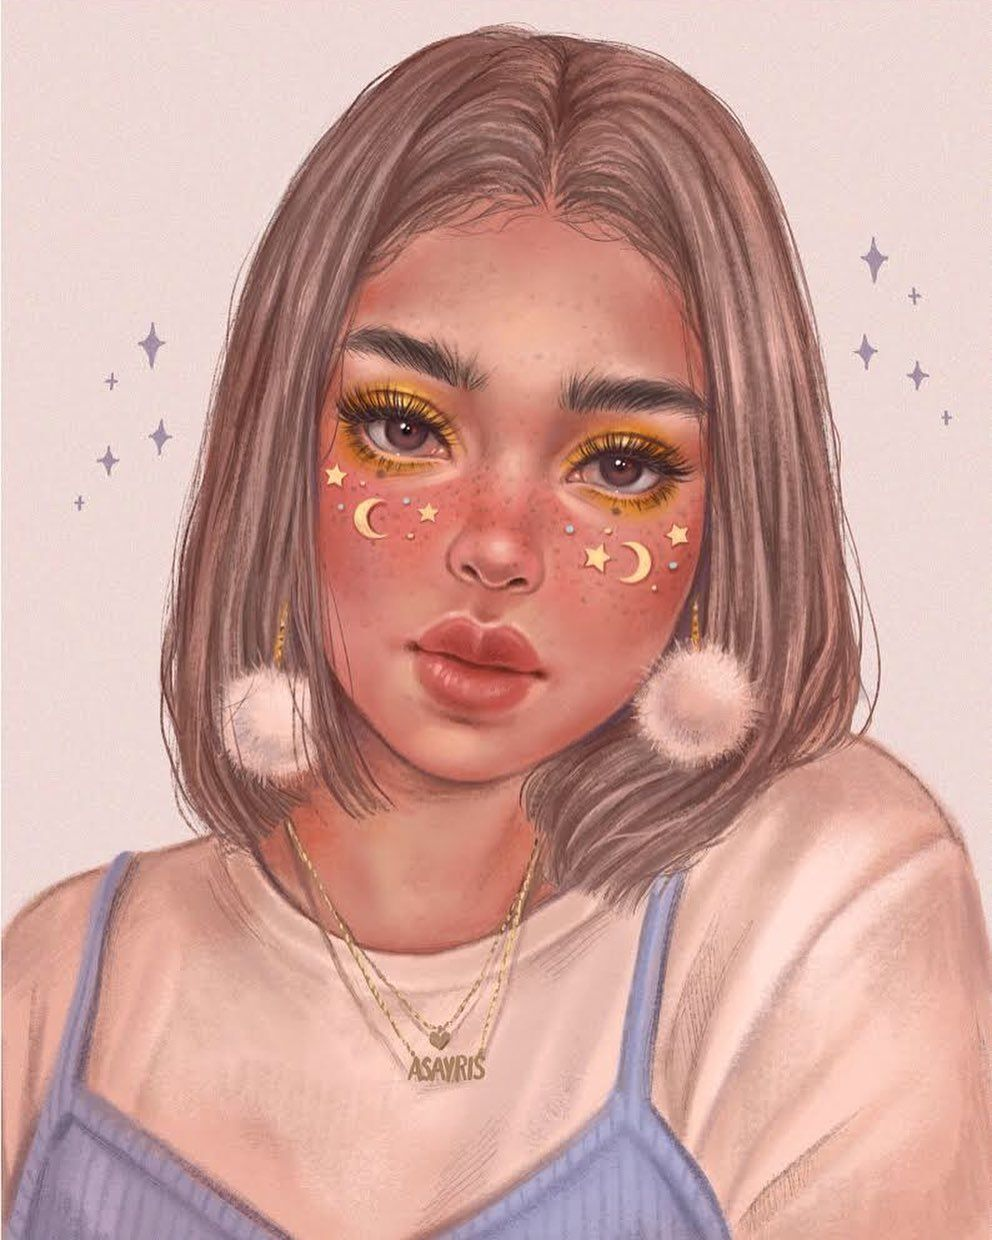 "a s a y r i s on Instagram: ""I don't know what to say, I love stars ✨ 💫 . #procreate #ipadart..."